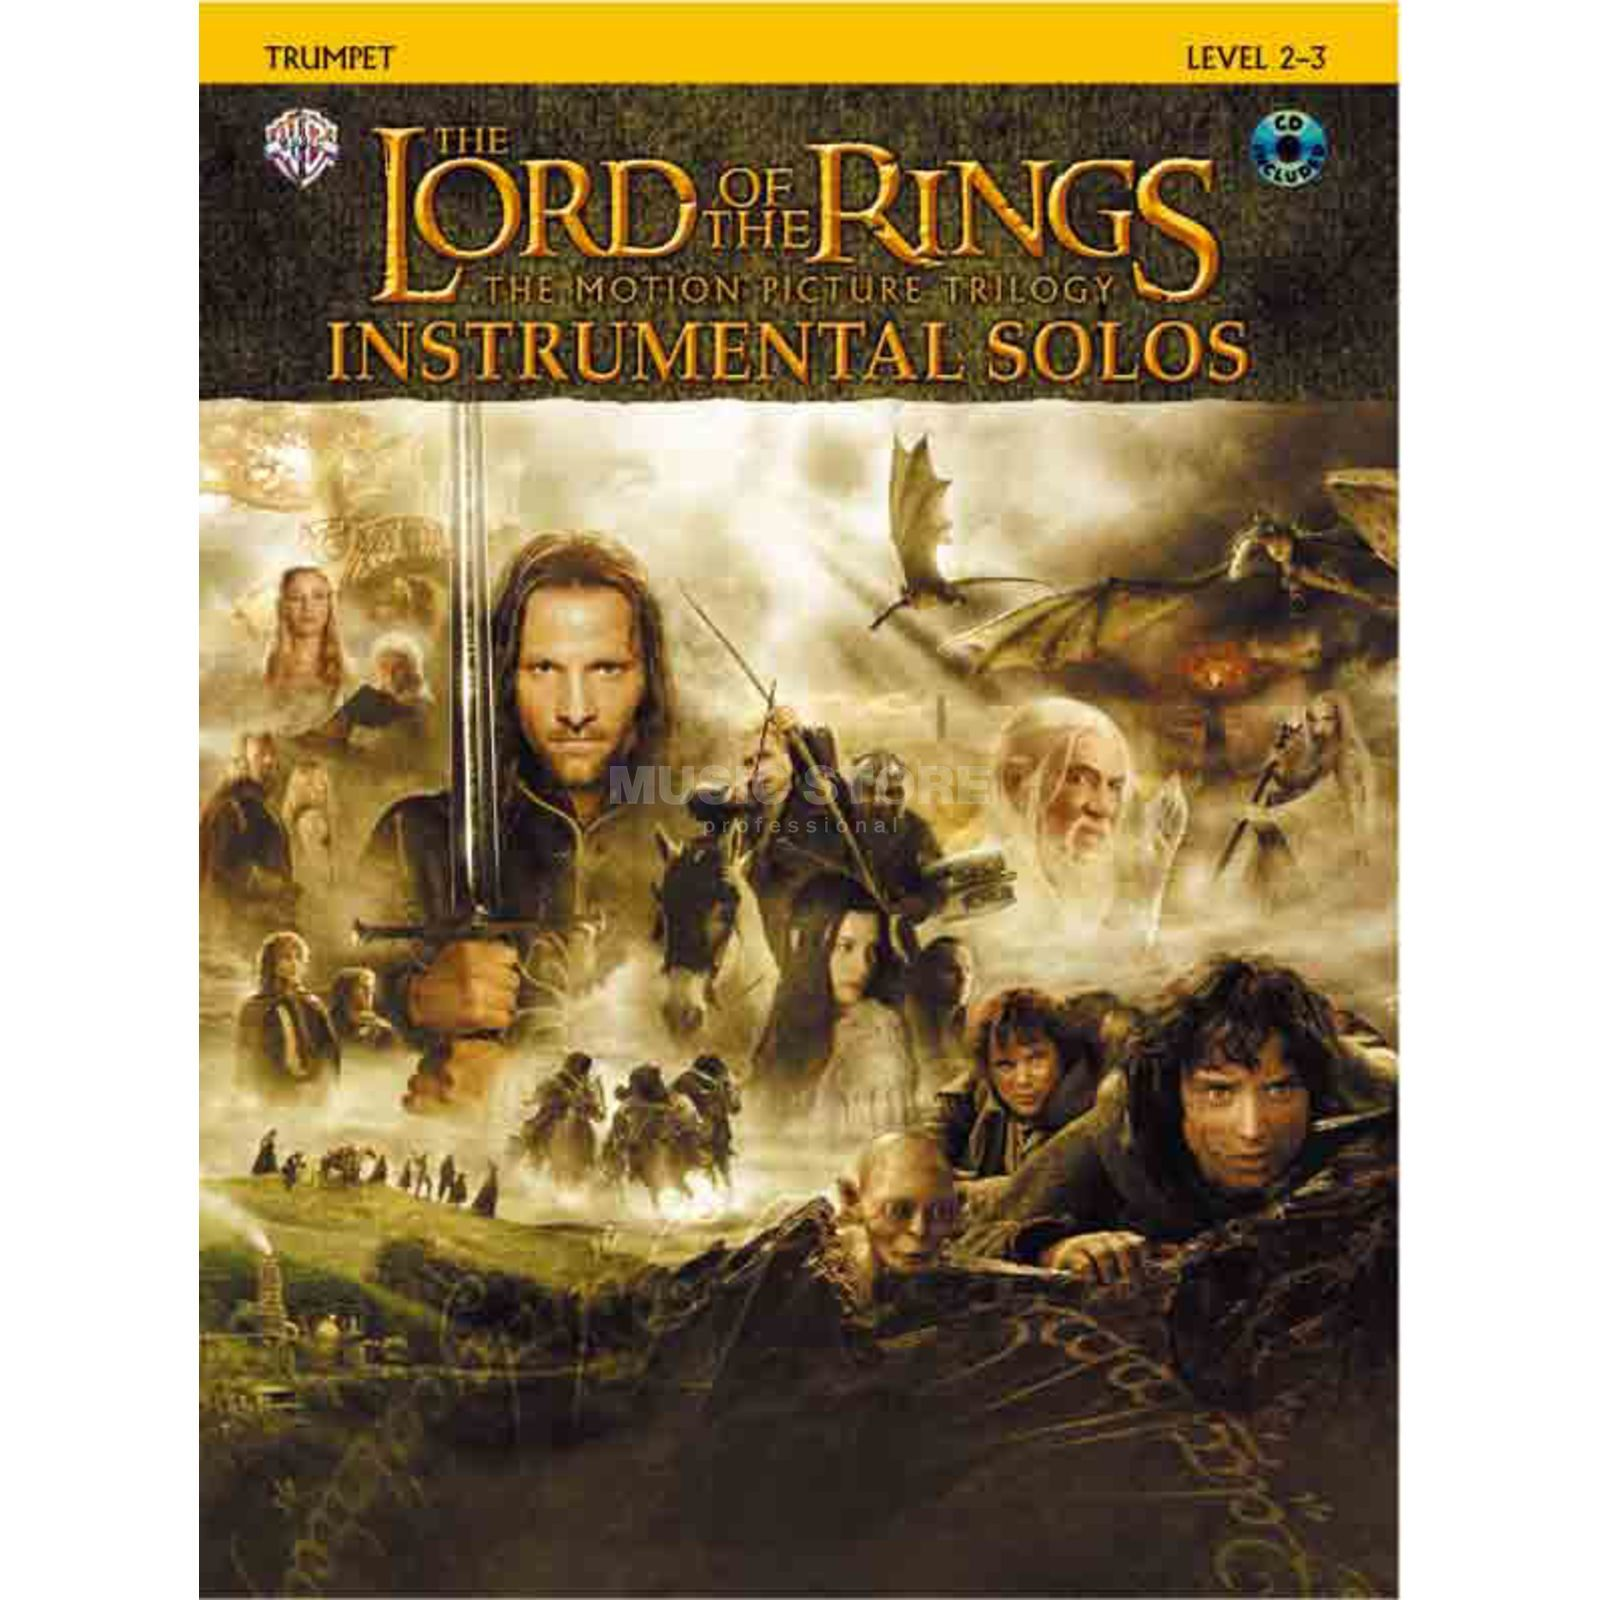 Alfred Music Lord of the Rings - Trumpet Instrumental Solos, Book/CD Produktbillede